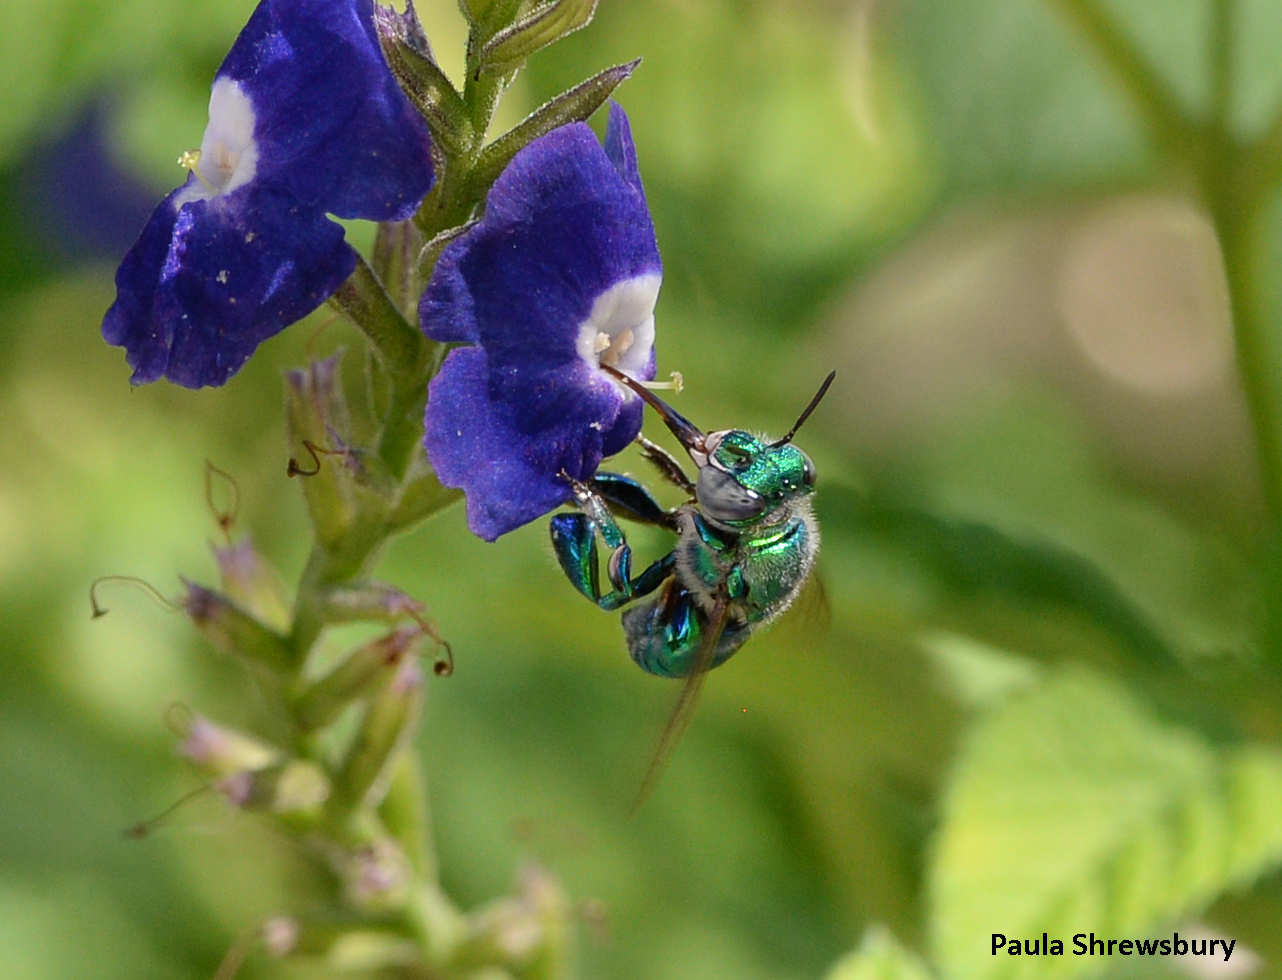 The arrival of green orchid bees in Florida has added one more flamboyant insect to a long list of arrivals from other lands. Photo credit: Paula Shrewsbury, UMD